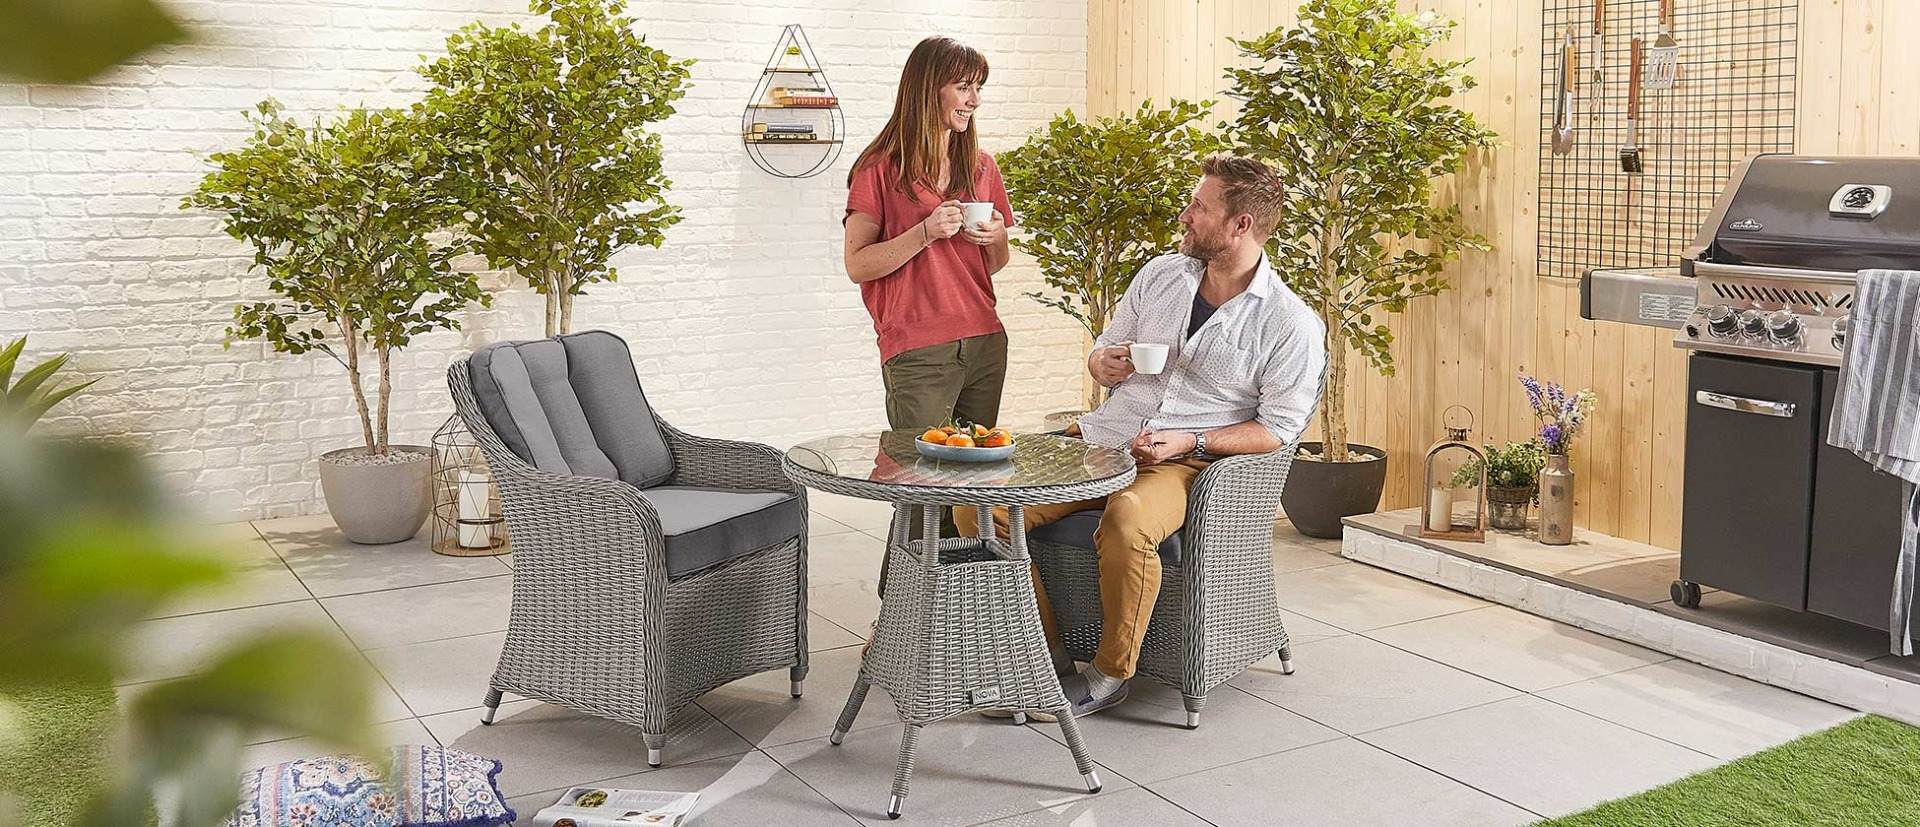 Amelia 2 Seat Bistro Set – 75Cm Round Table Intended For Messina Garden Stools Set (Set Of 2) (View 22 of 25)